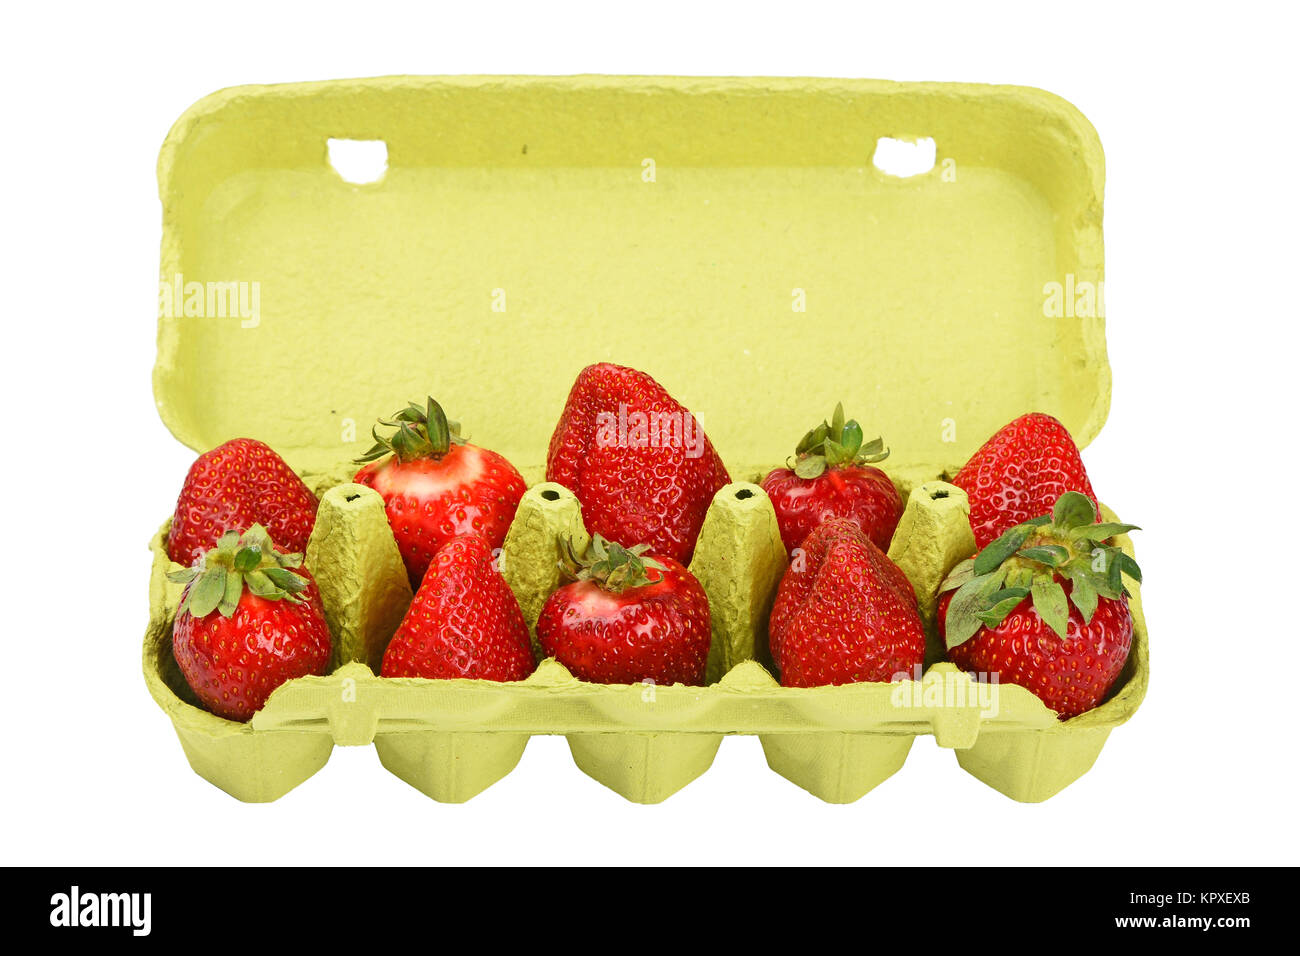 Strawberry in open green egg carrier over white - Stock Image